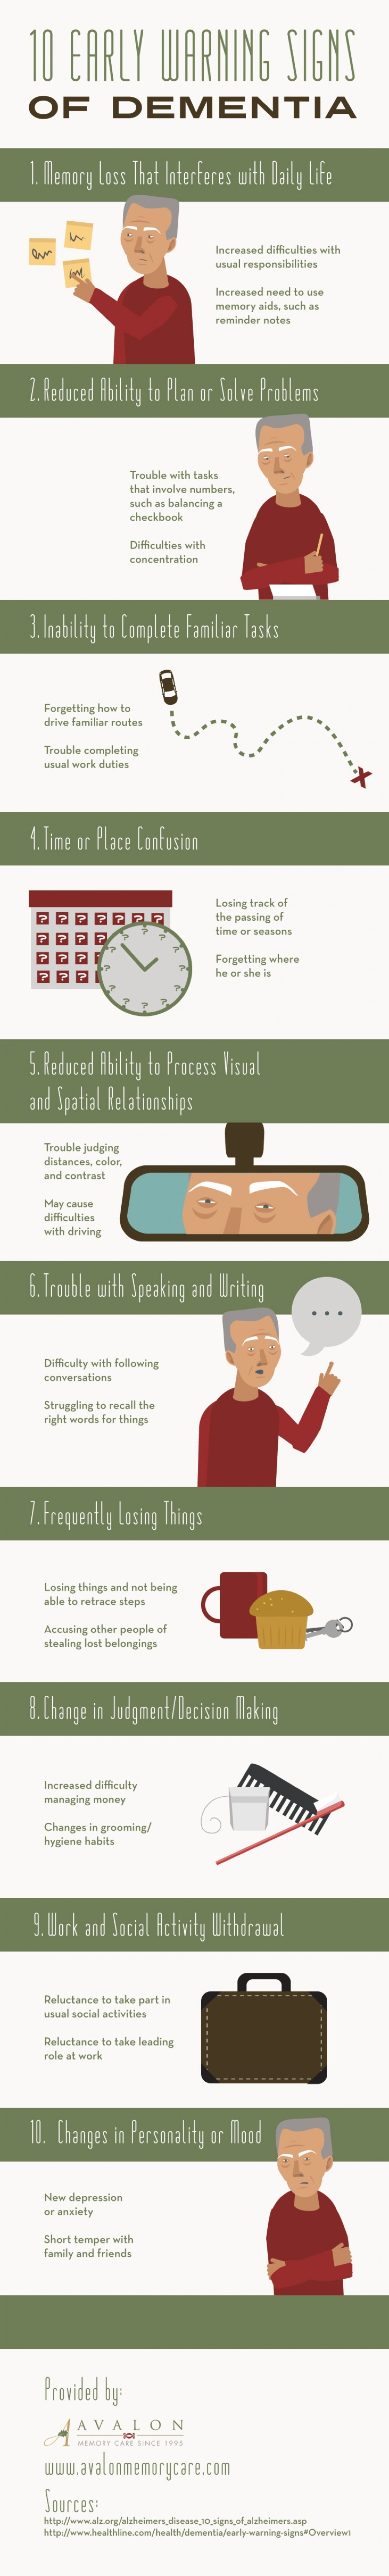 10 Early Warning Signs Of Dementia Infographic